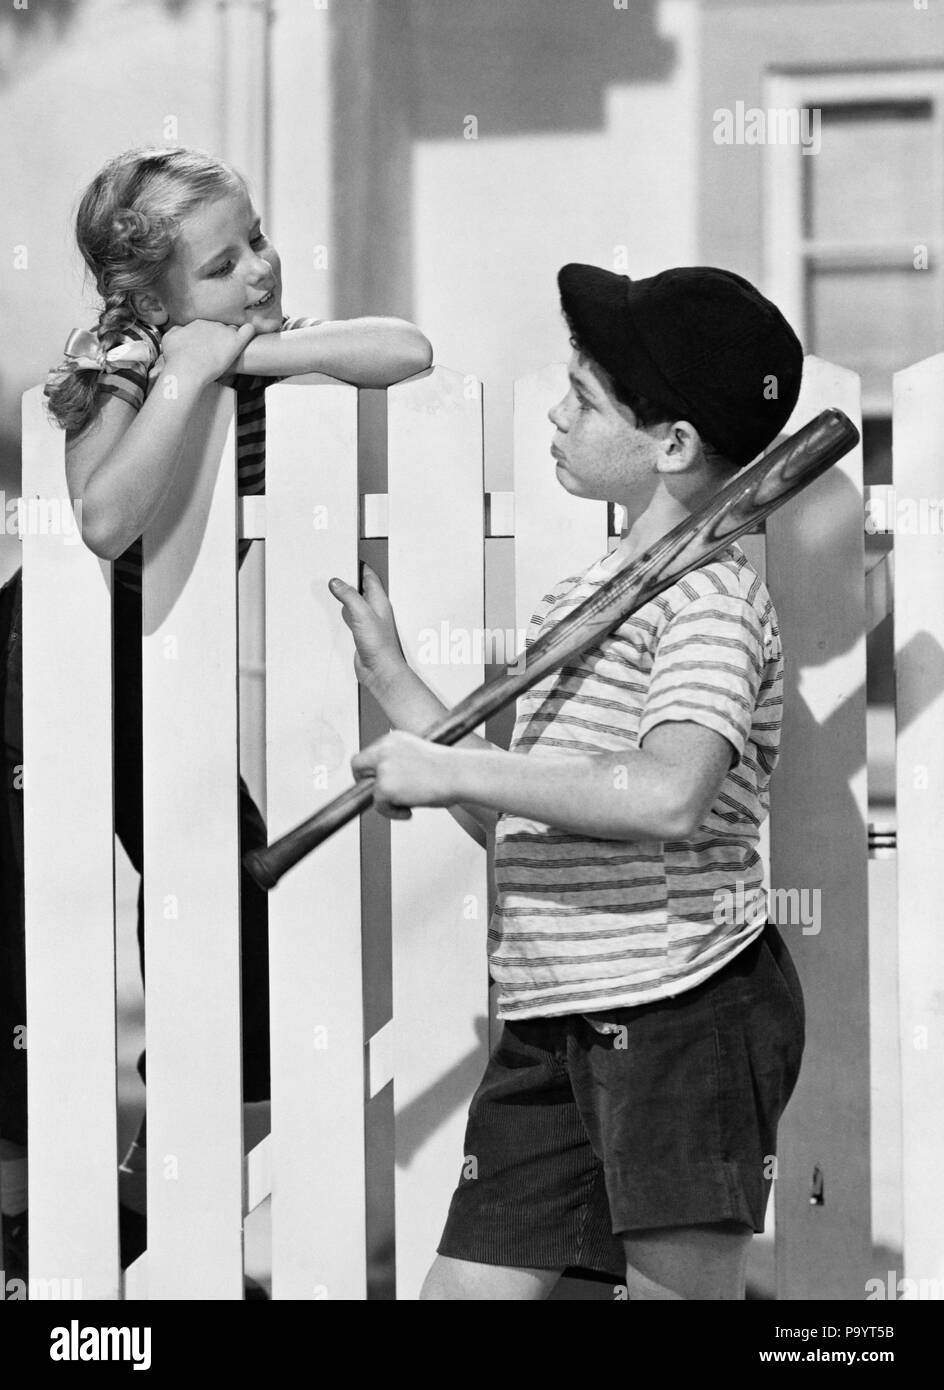 1940s 1950s BOY BASEBALL BAT CAP TALKING TO GIRL OVER WHITE PICKET FENCE - bx012617 CAM001 HARS FEMALES VERTICAL BROTHERS HOME LIFE COPY SPACE PEOPLE CHILDREN FRIENDSHIP HALF-LENGTH ADOLESCENT BOYFRIEND MALES SIBLINGS SISTERS B&W NEIGHBORS GIRLFRIEND PRETEEN BOY DREAMS HAPPINESS NEIGHBORHOOD CAM001 PRETEEN SIBLING BOYFRIENDS GIRLFRIENDS CRUSH PUPPY LOVE AFFECTION JUVENILES PRE-TEEN PRE-TEEN BOY PRE-TEEN GIRL TOGETHERNESS BLACK AND WHITE CAUCASIAN ETHNICITY OLD FASHIONED - Stock Image